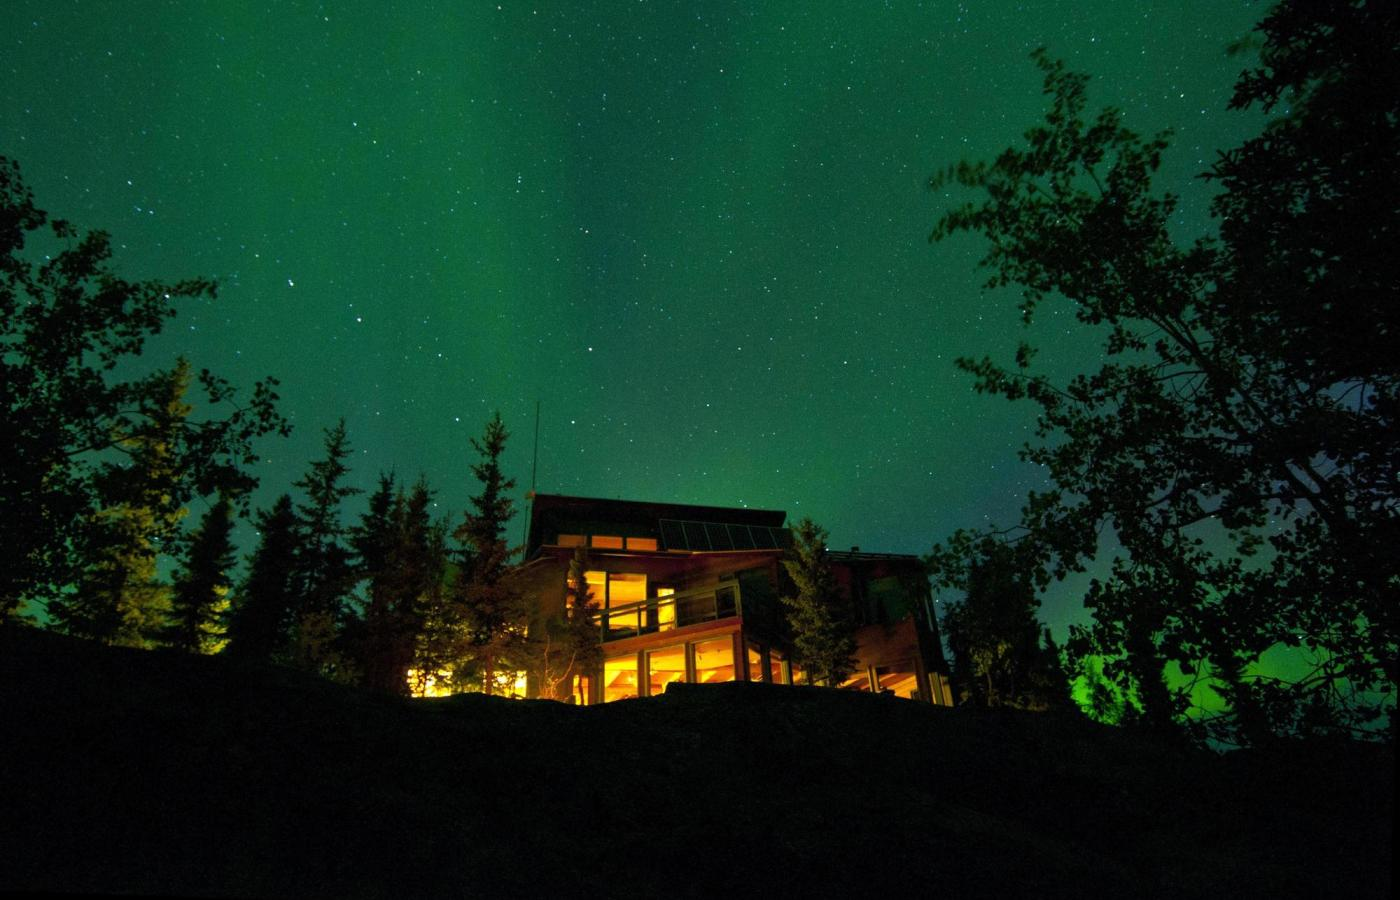 The northern light dance above a wood cabin perched on the Northern landscape